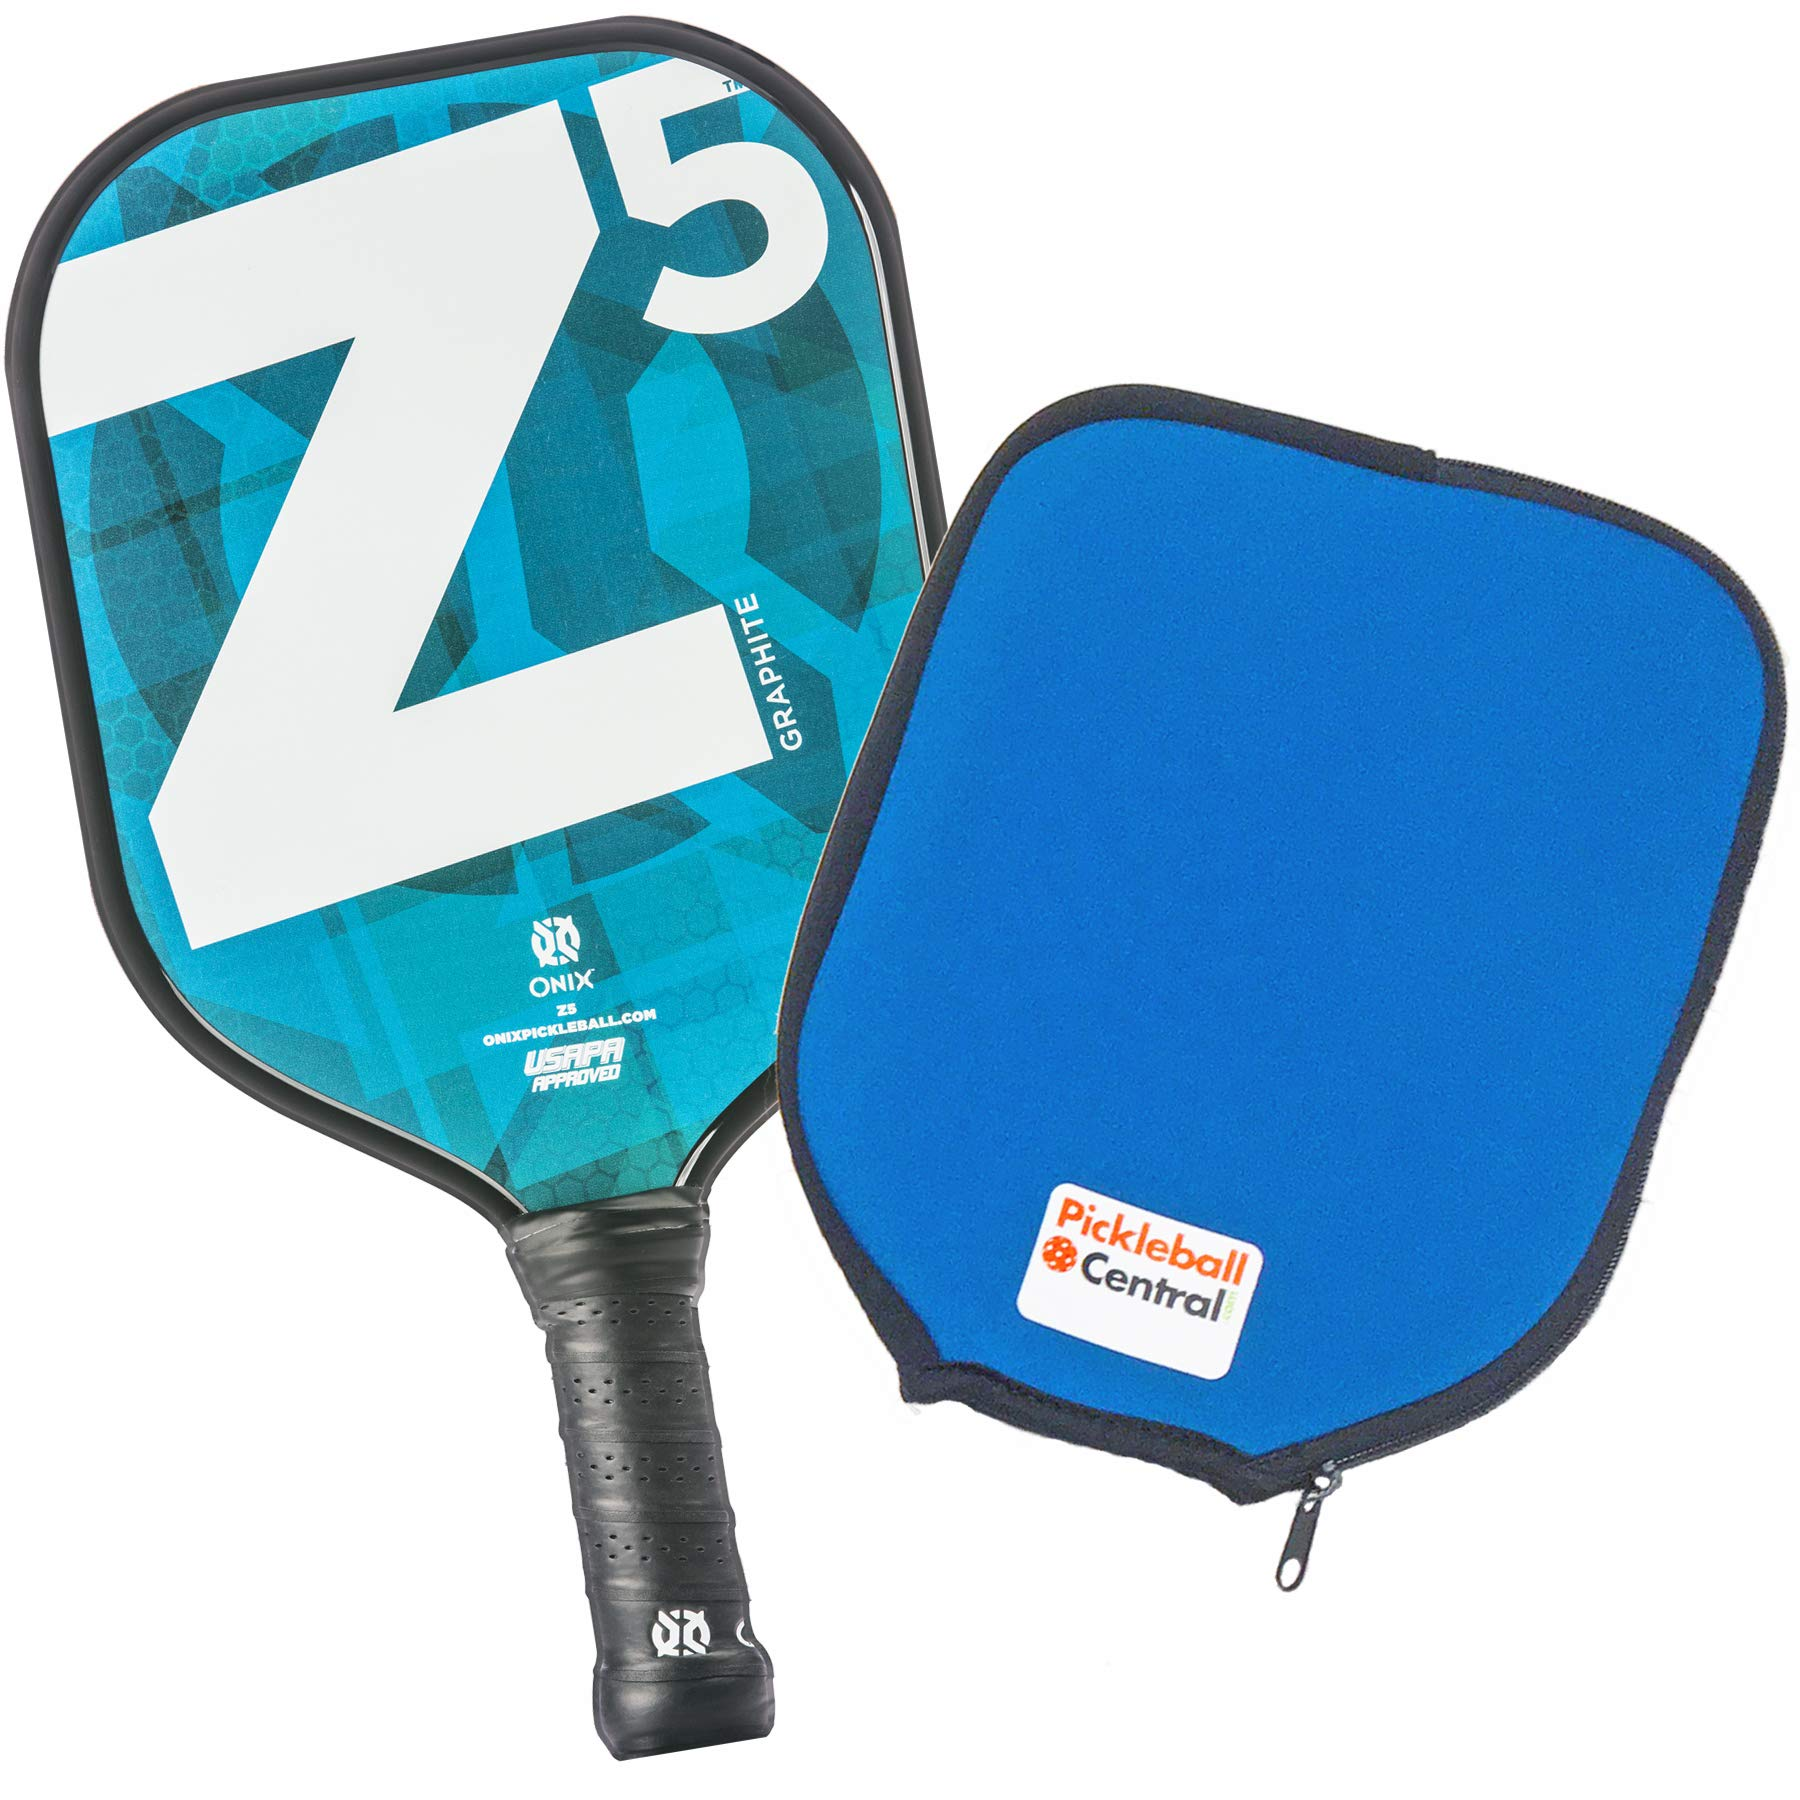 Onix Z5 Graphite Pickleball Paddle and Paddle Cover (Mod Blue) | Gift Pack by Onix